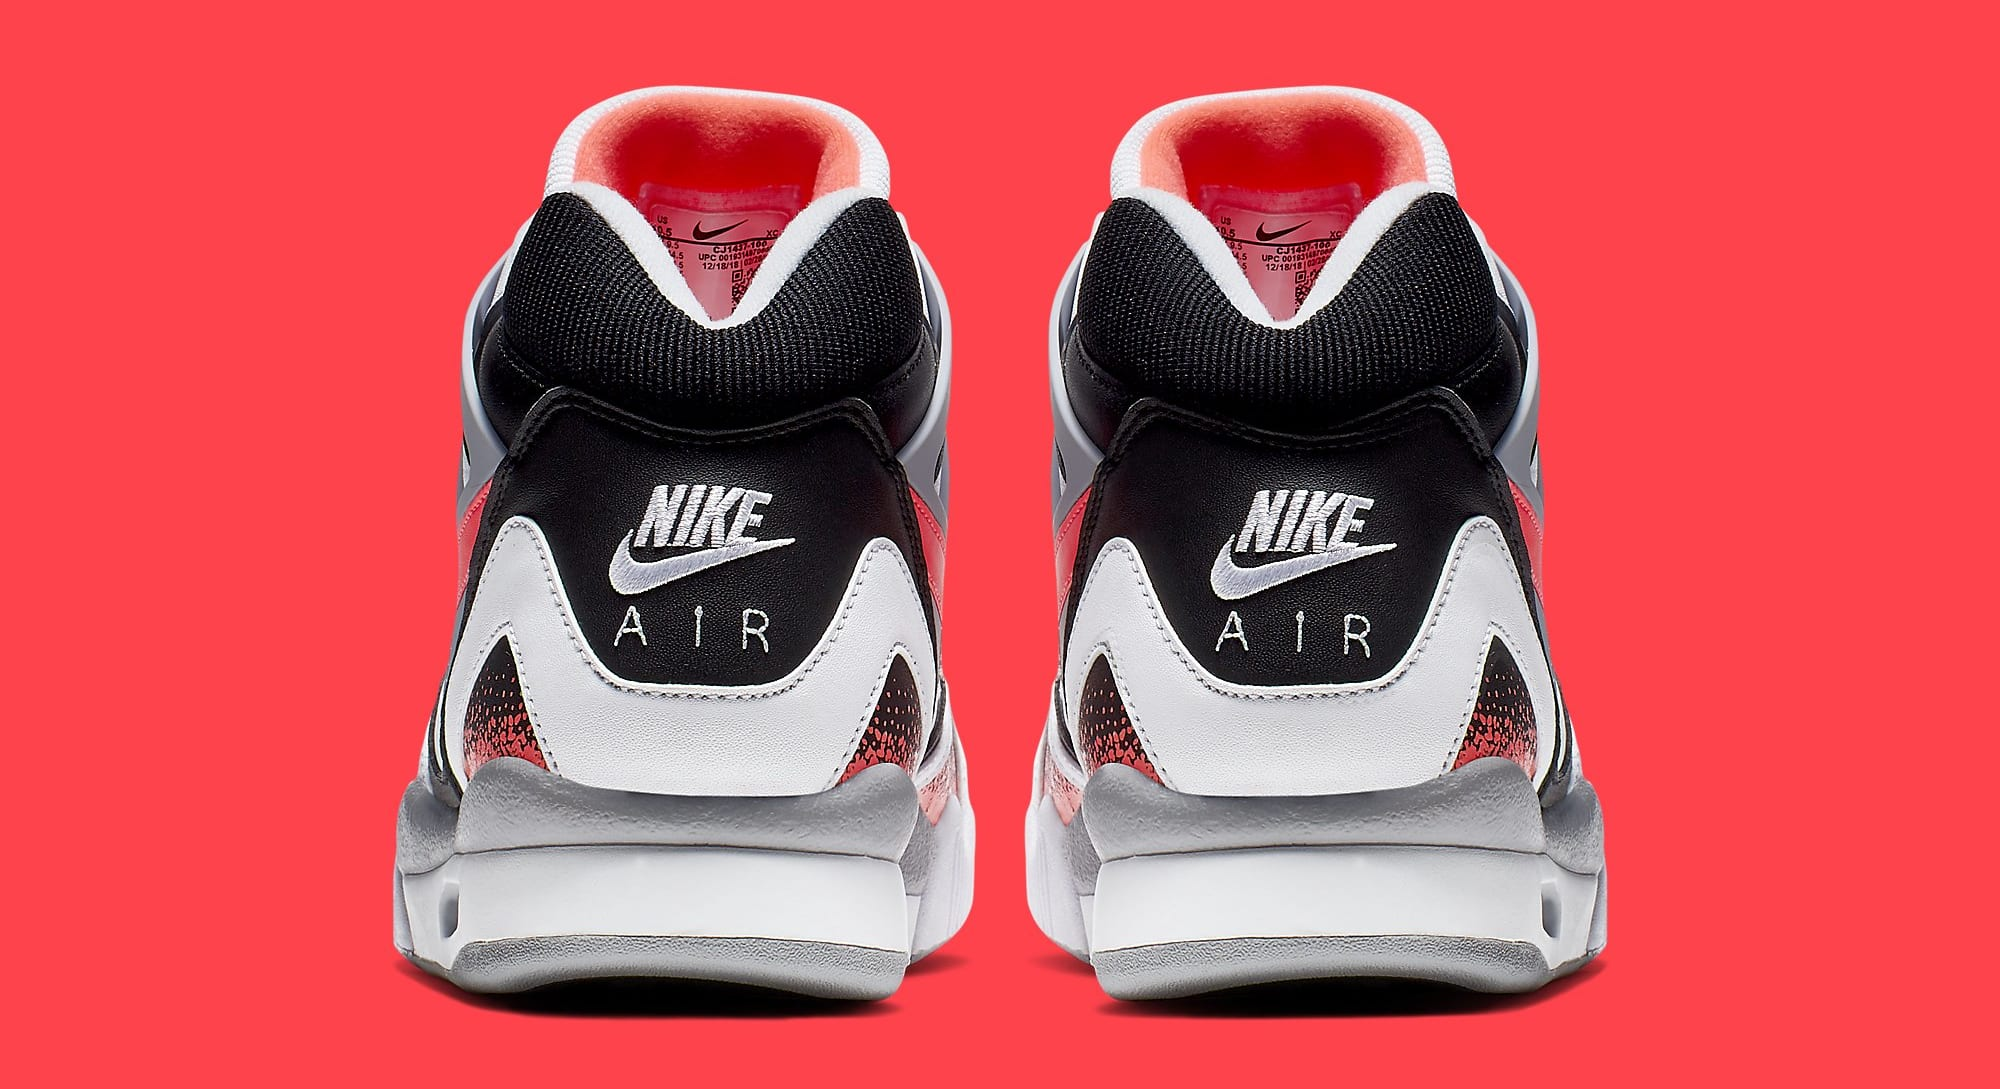 Nike Air Tech Challenge 2 'Hot Lava' CJ1437-100 (Heel)